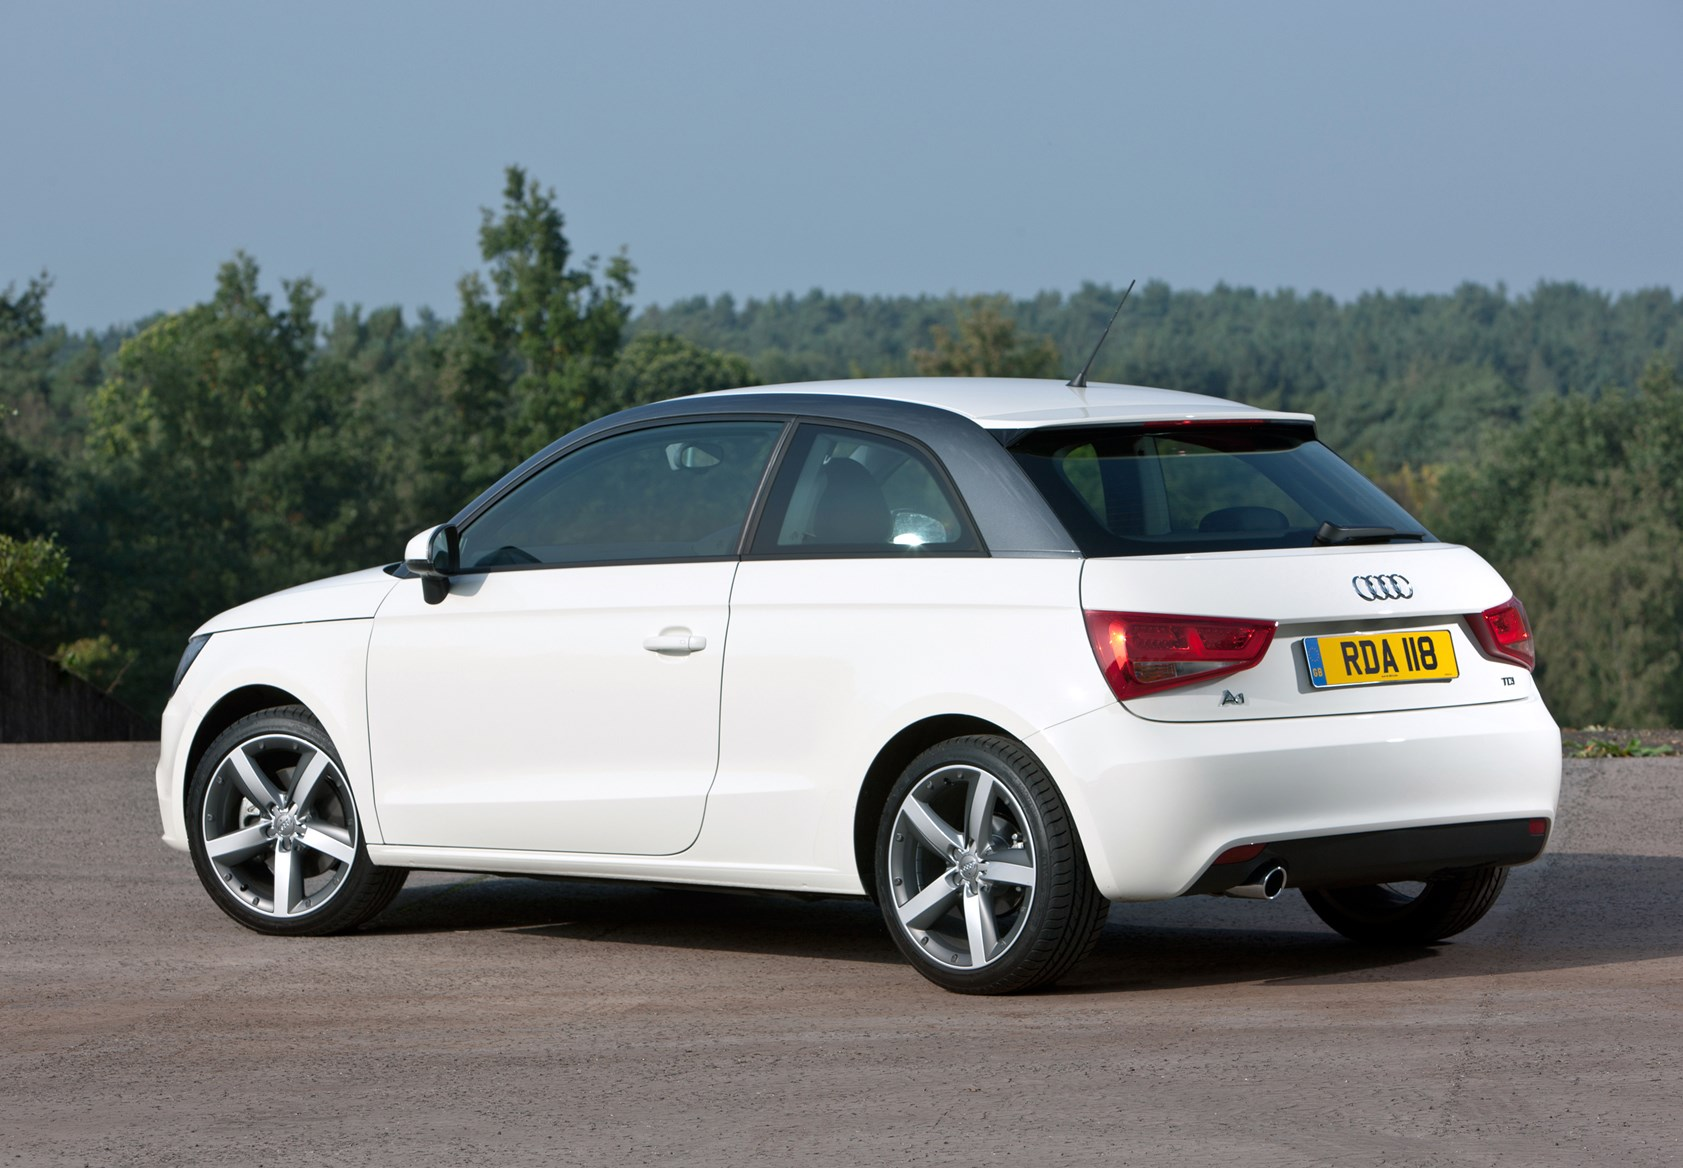 Audi A1 Price Usa >> Audi A1 Hatchback Review | Autos Post